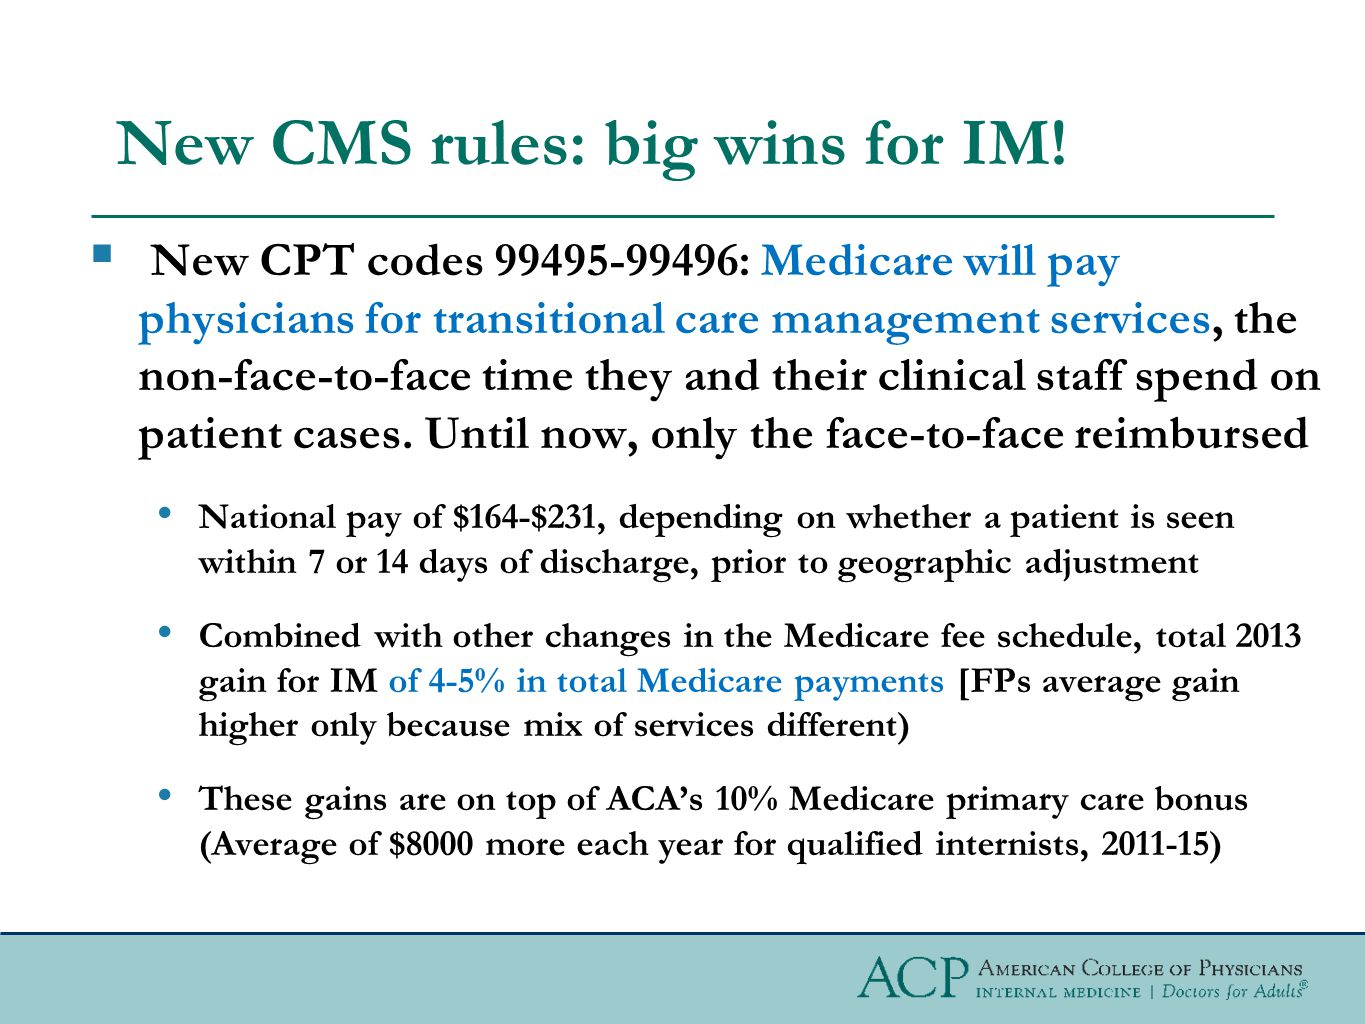 New CMS rules: big wins for IM.